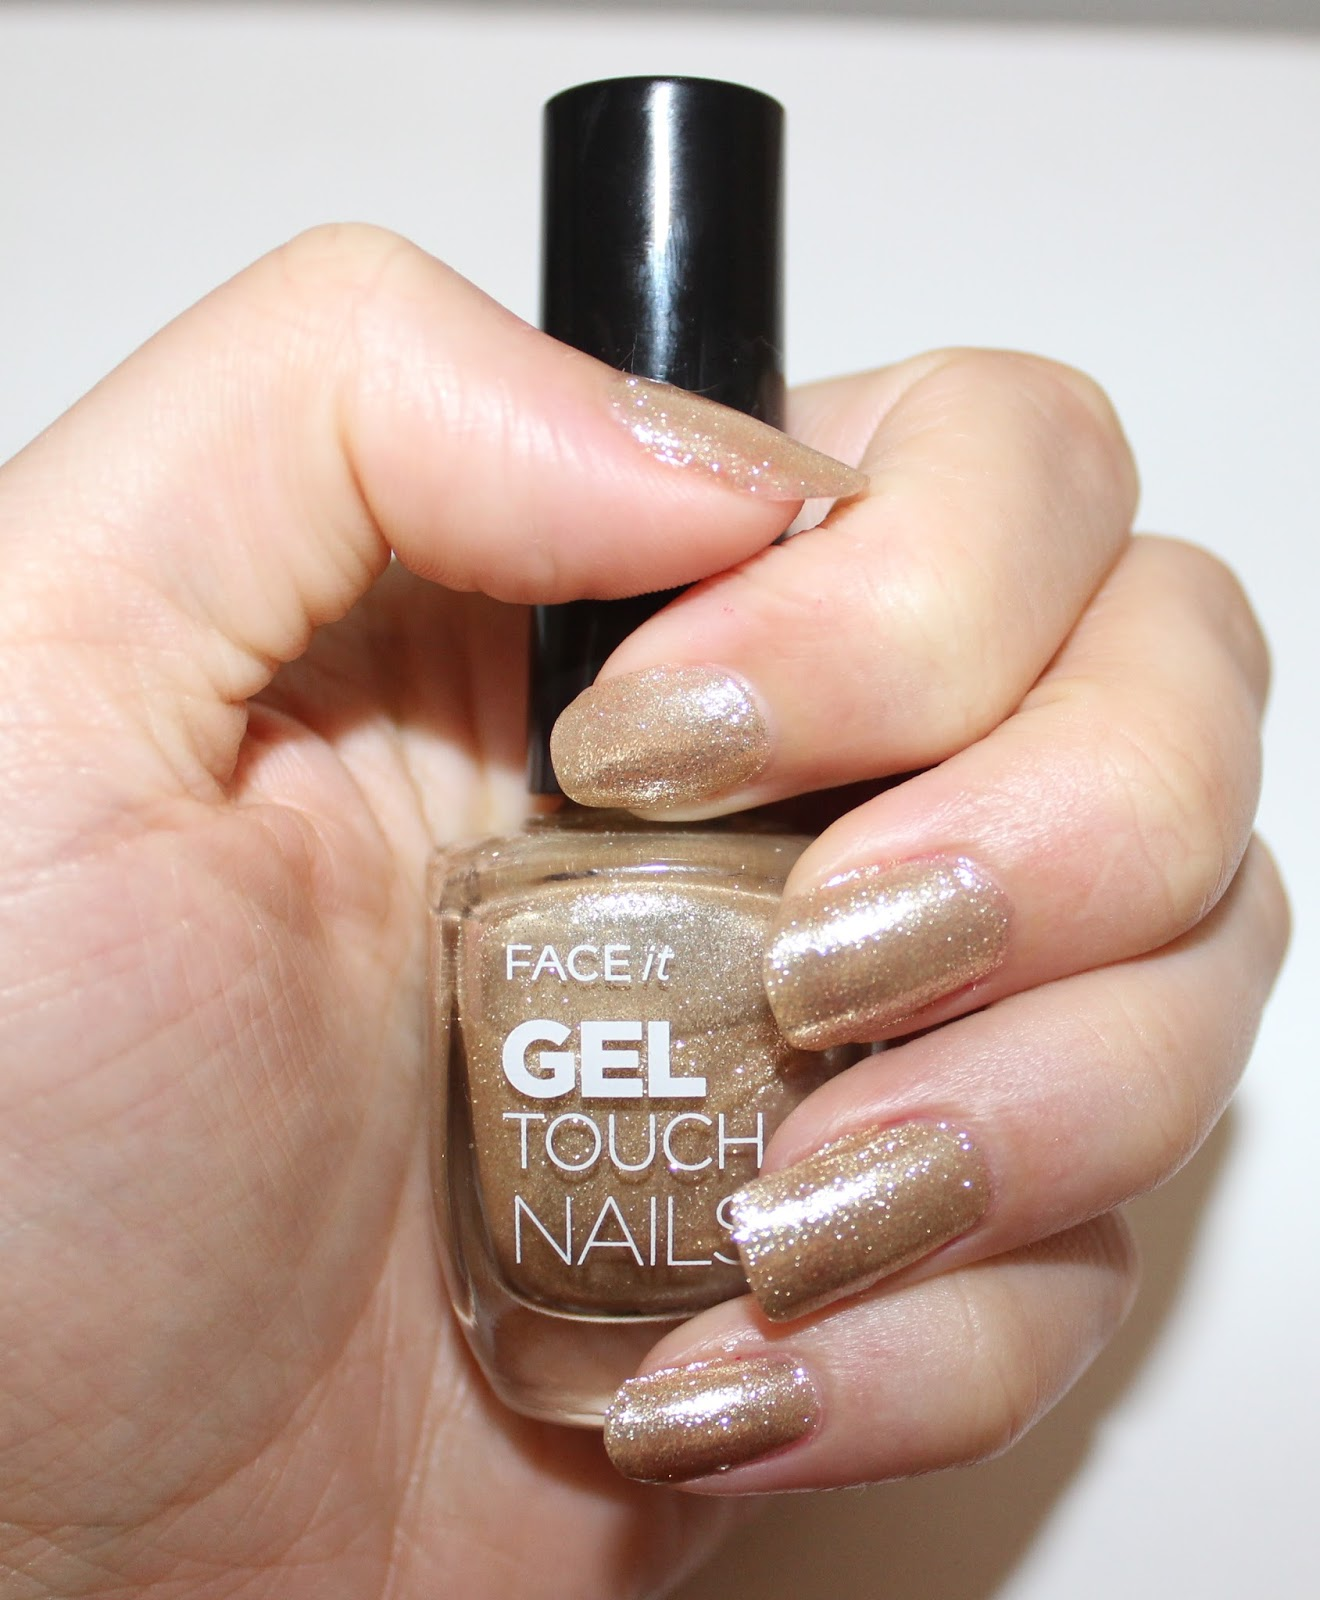 Theface Face It Gel Touch Nail Polish In Gl 111